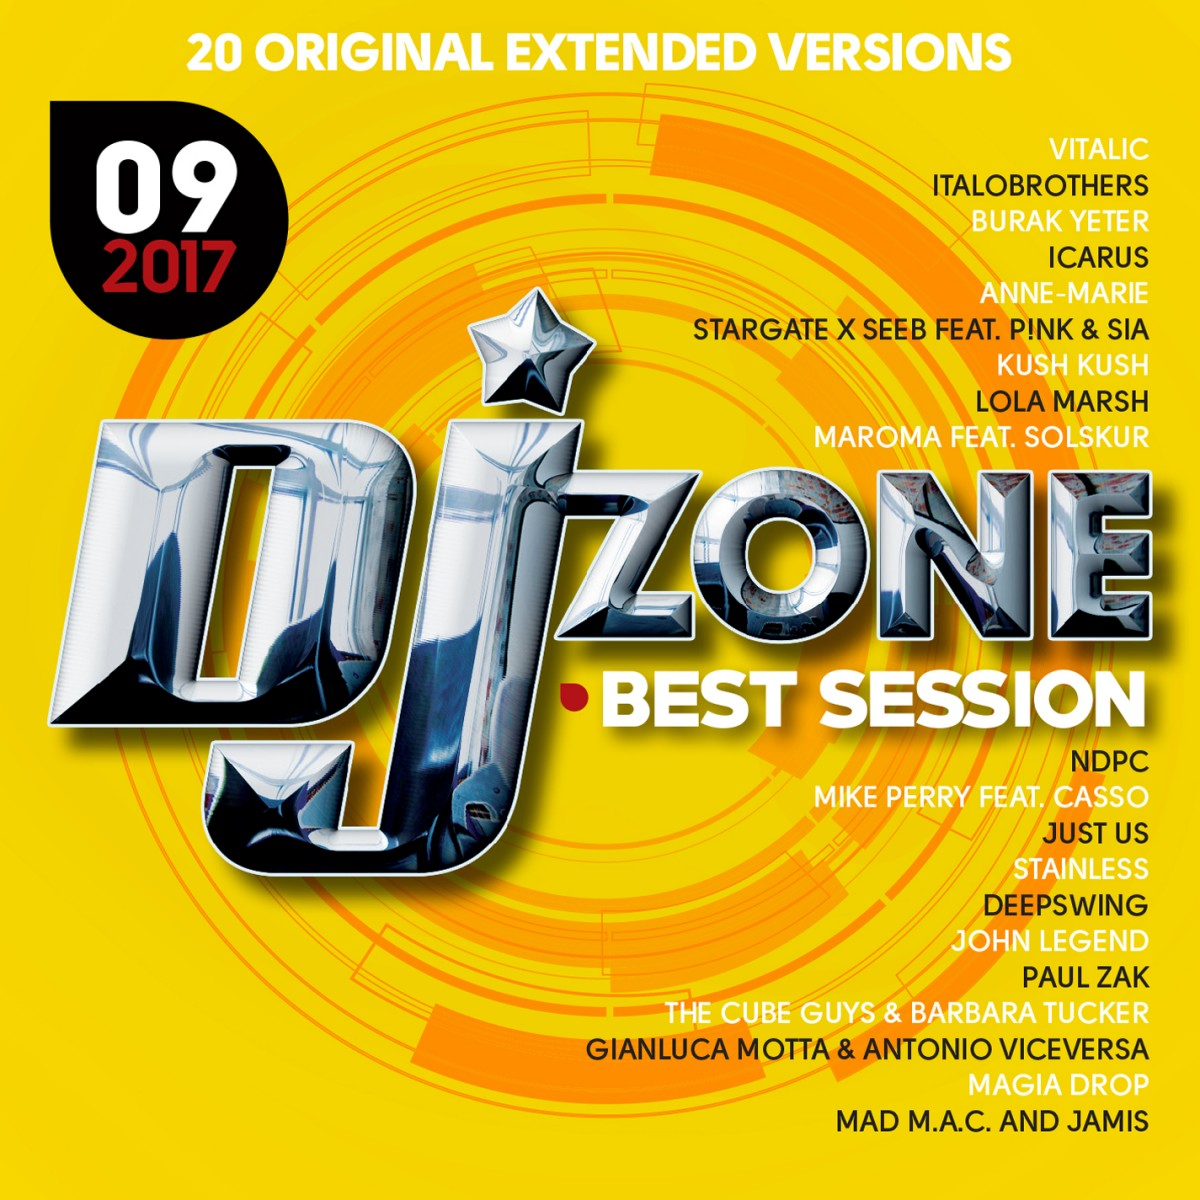 DJ ZONE BEST SESSION 09/2017